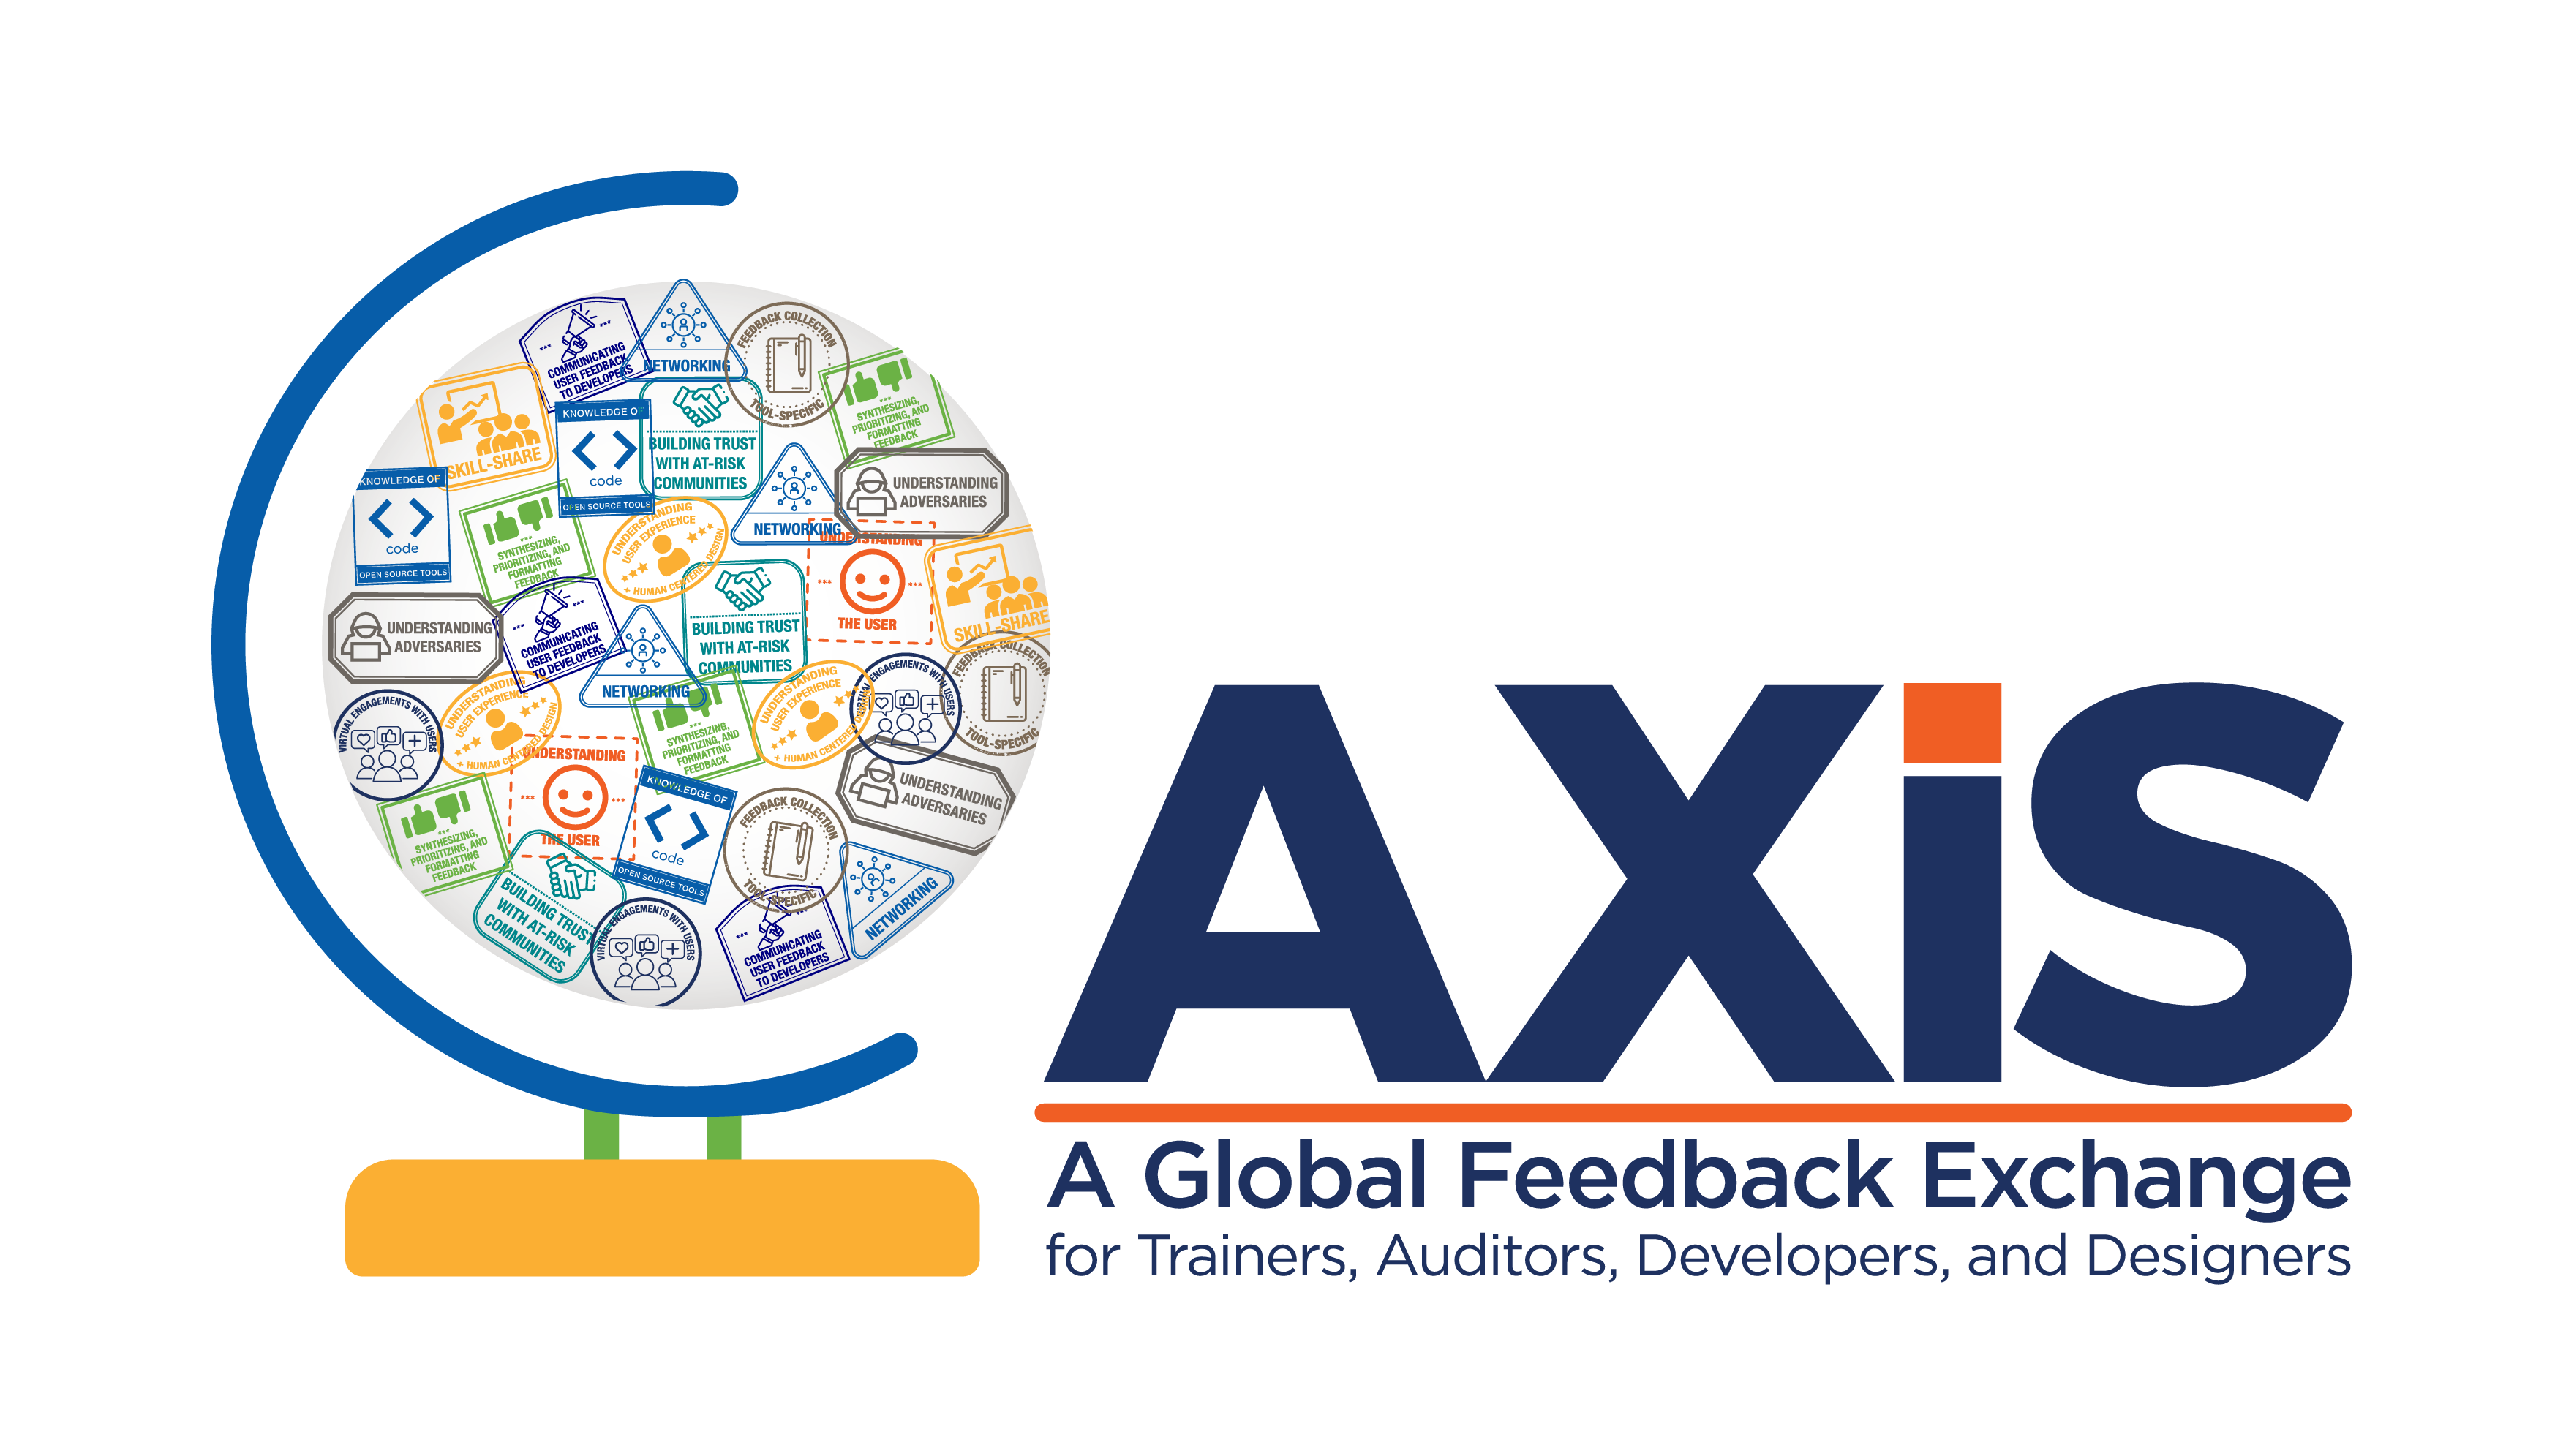 Image of the AXIS event logo